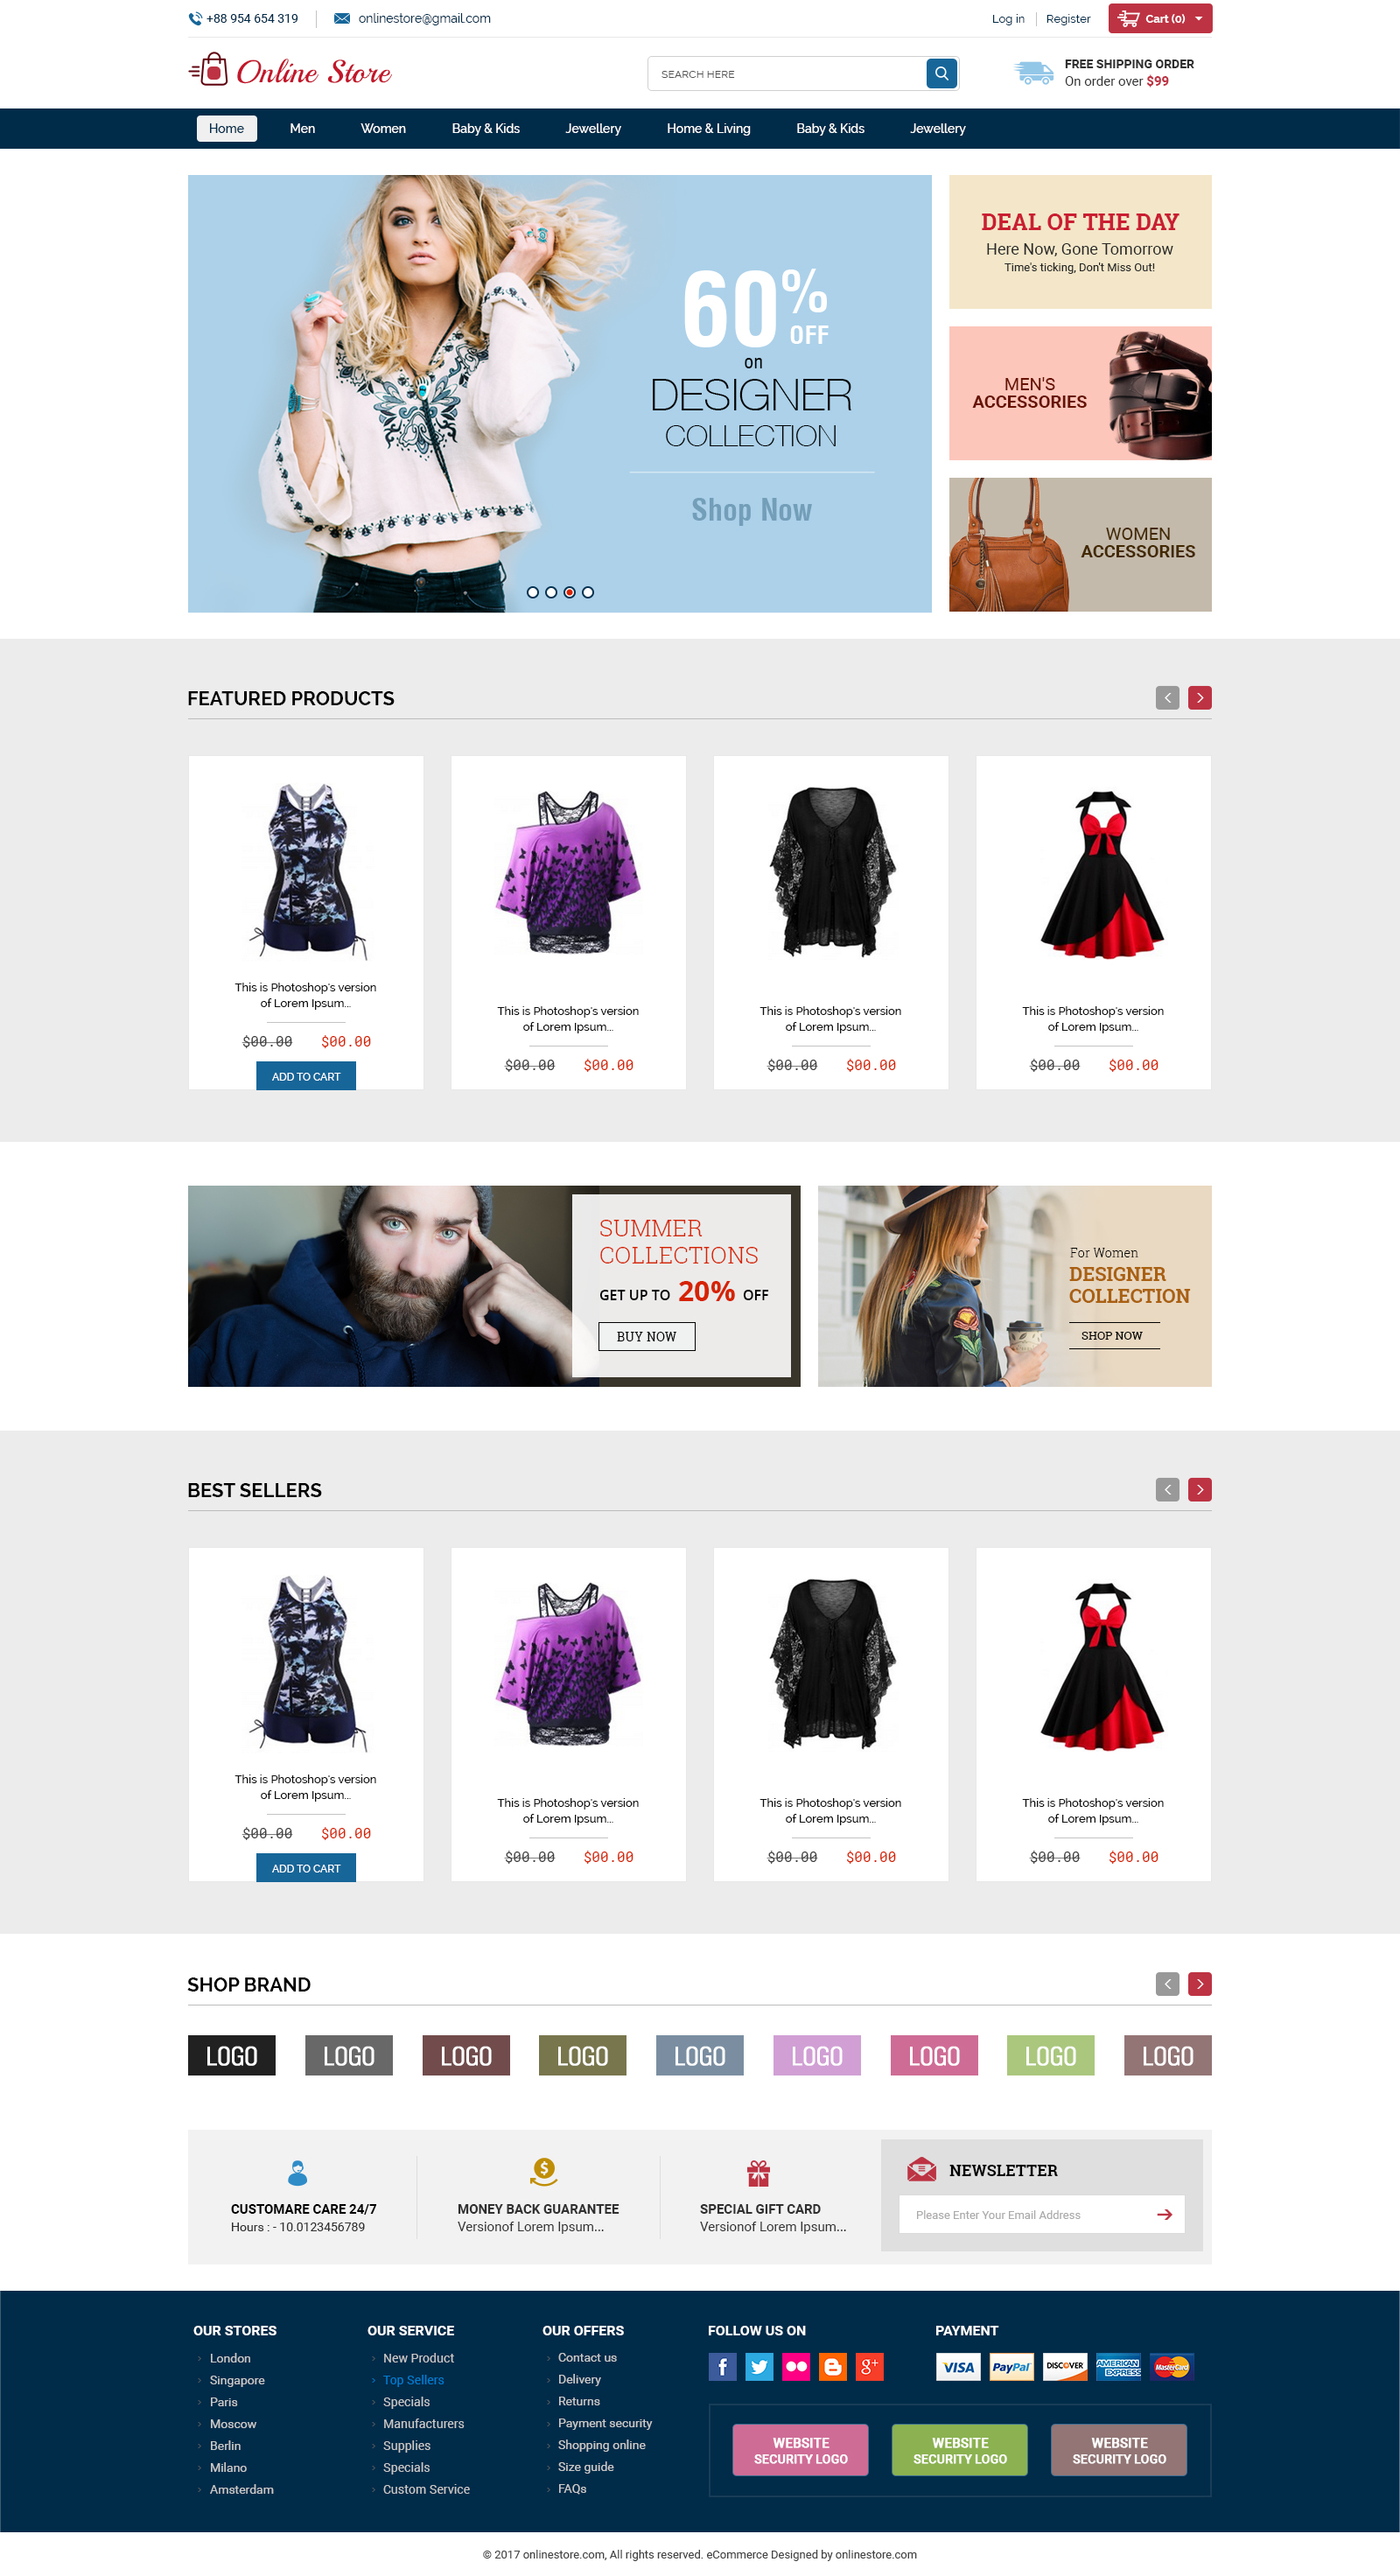 d79598d204 Online Store - Creative Ecommerce PSD Web Templates - PSD Templates ·  Screenshot 00 Homepage 00.jpg Screenshot 01 Homepage 01.jpg ...